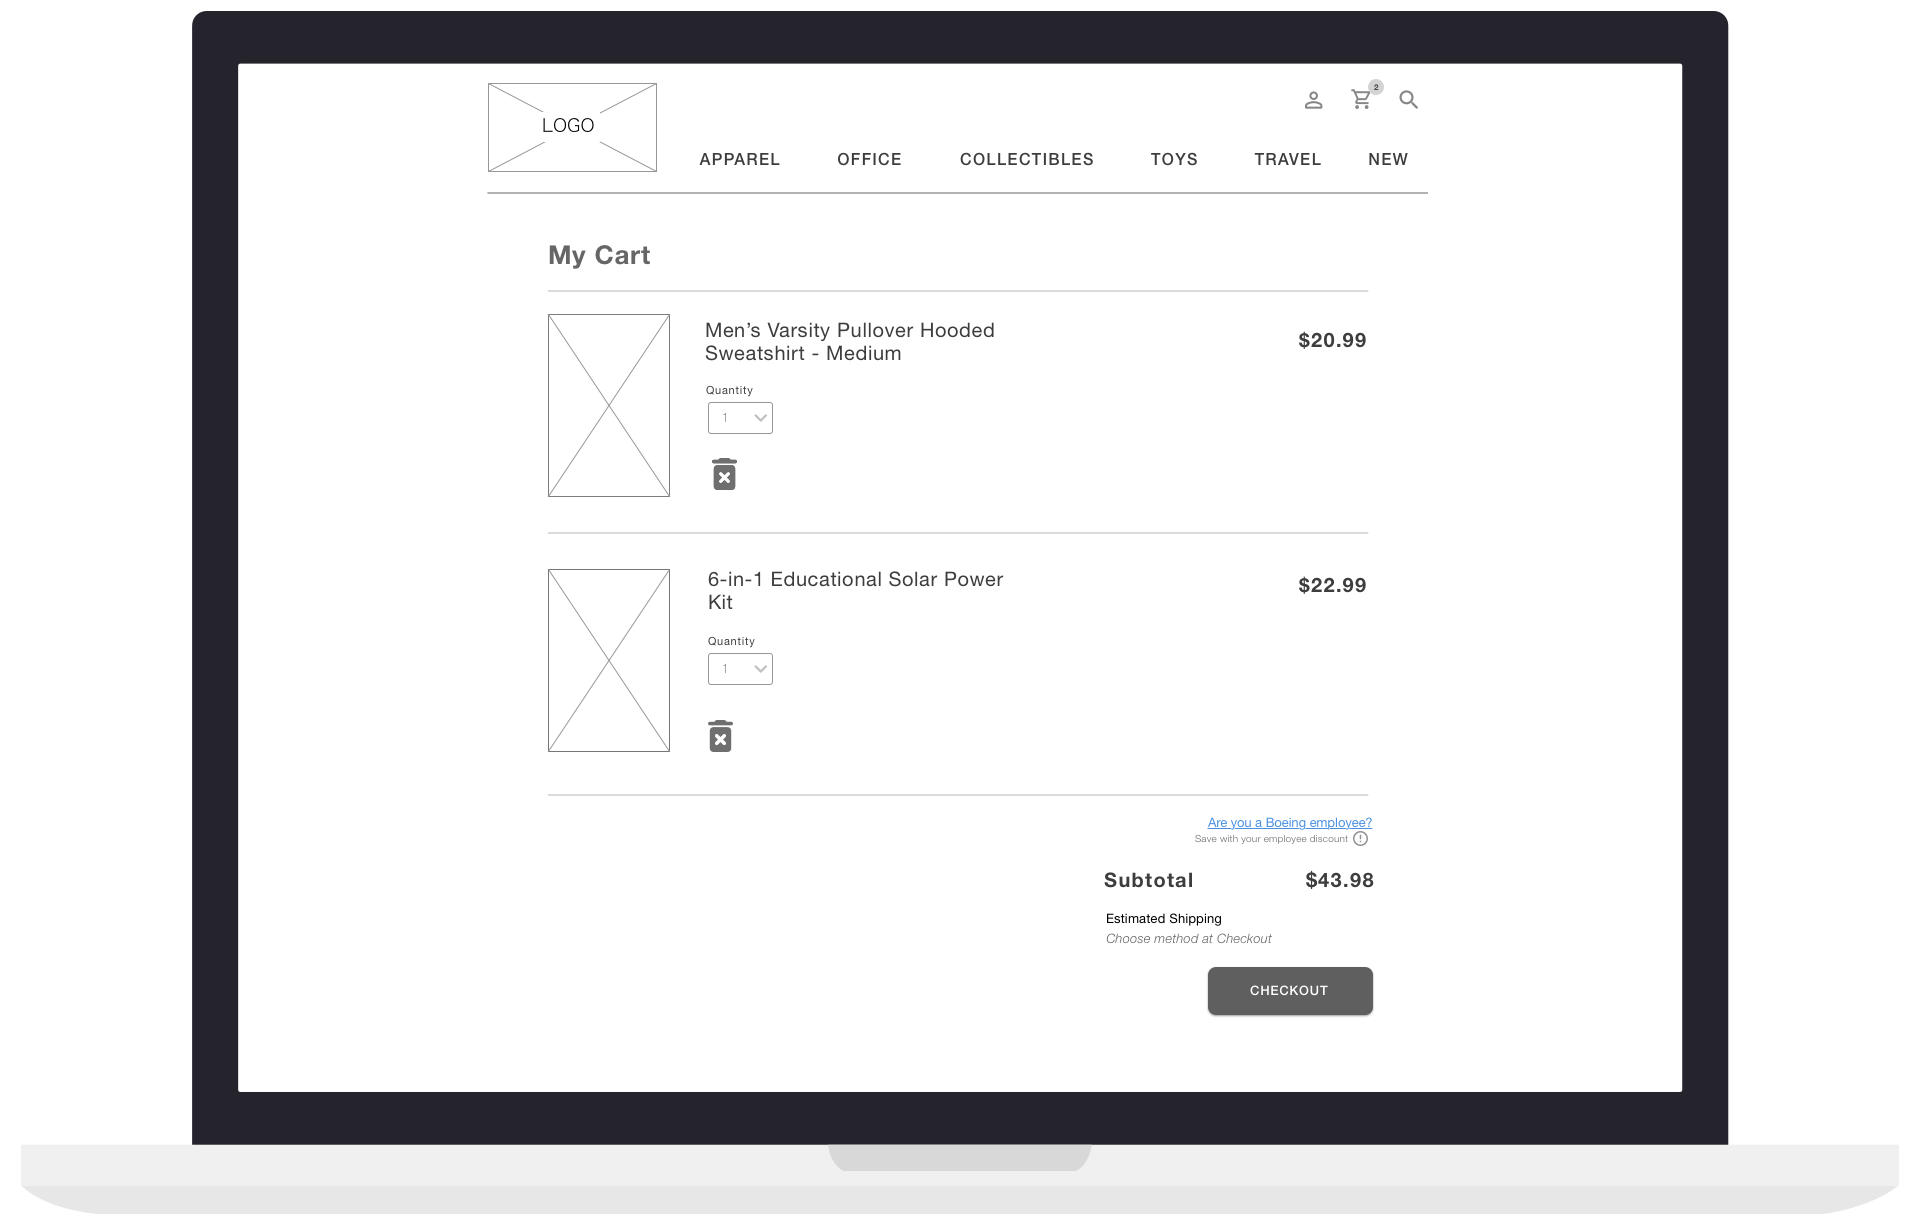 When they're ready to checkout, users can easily view all products in their cart with corresponding prices. Again, big photos and visible prices are important to my user. And, here they can choose to validate their employee discount and save some money!